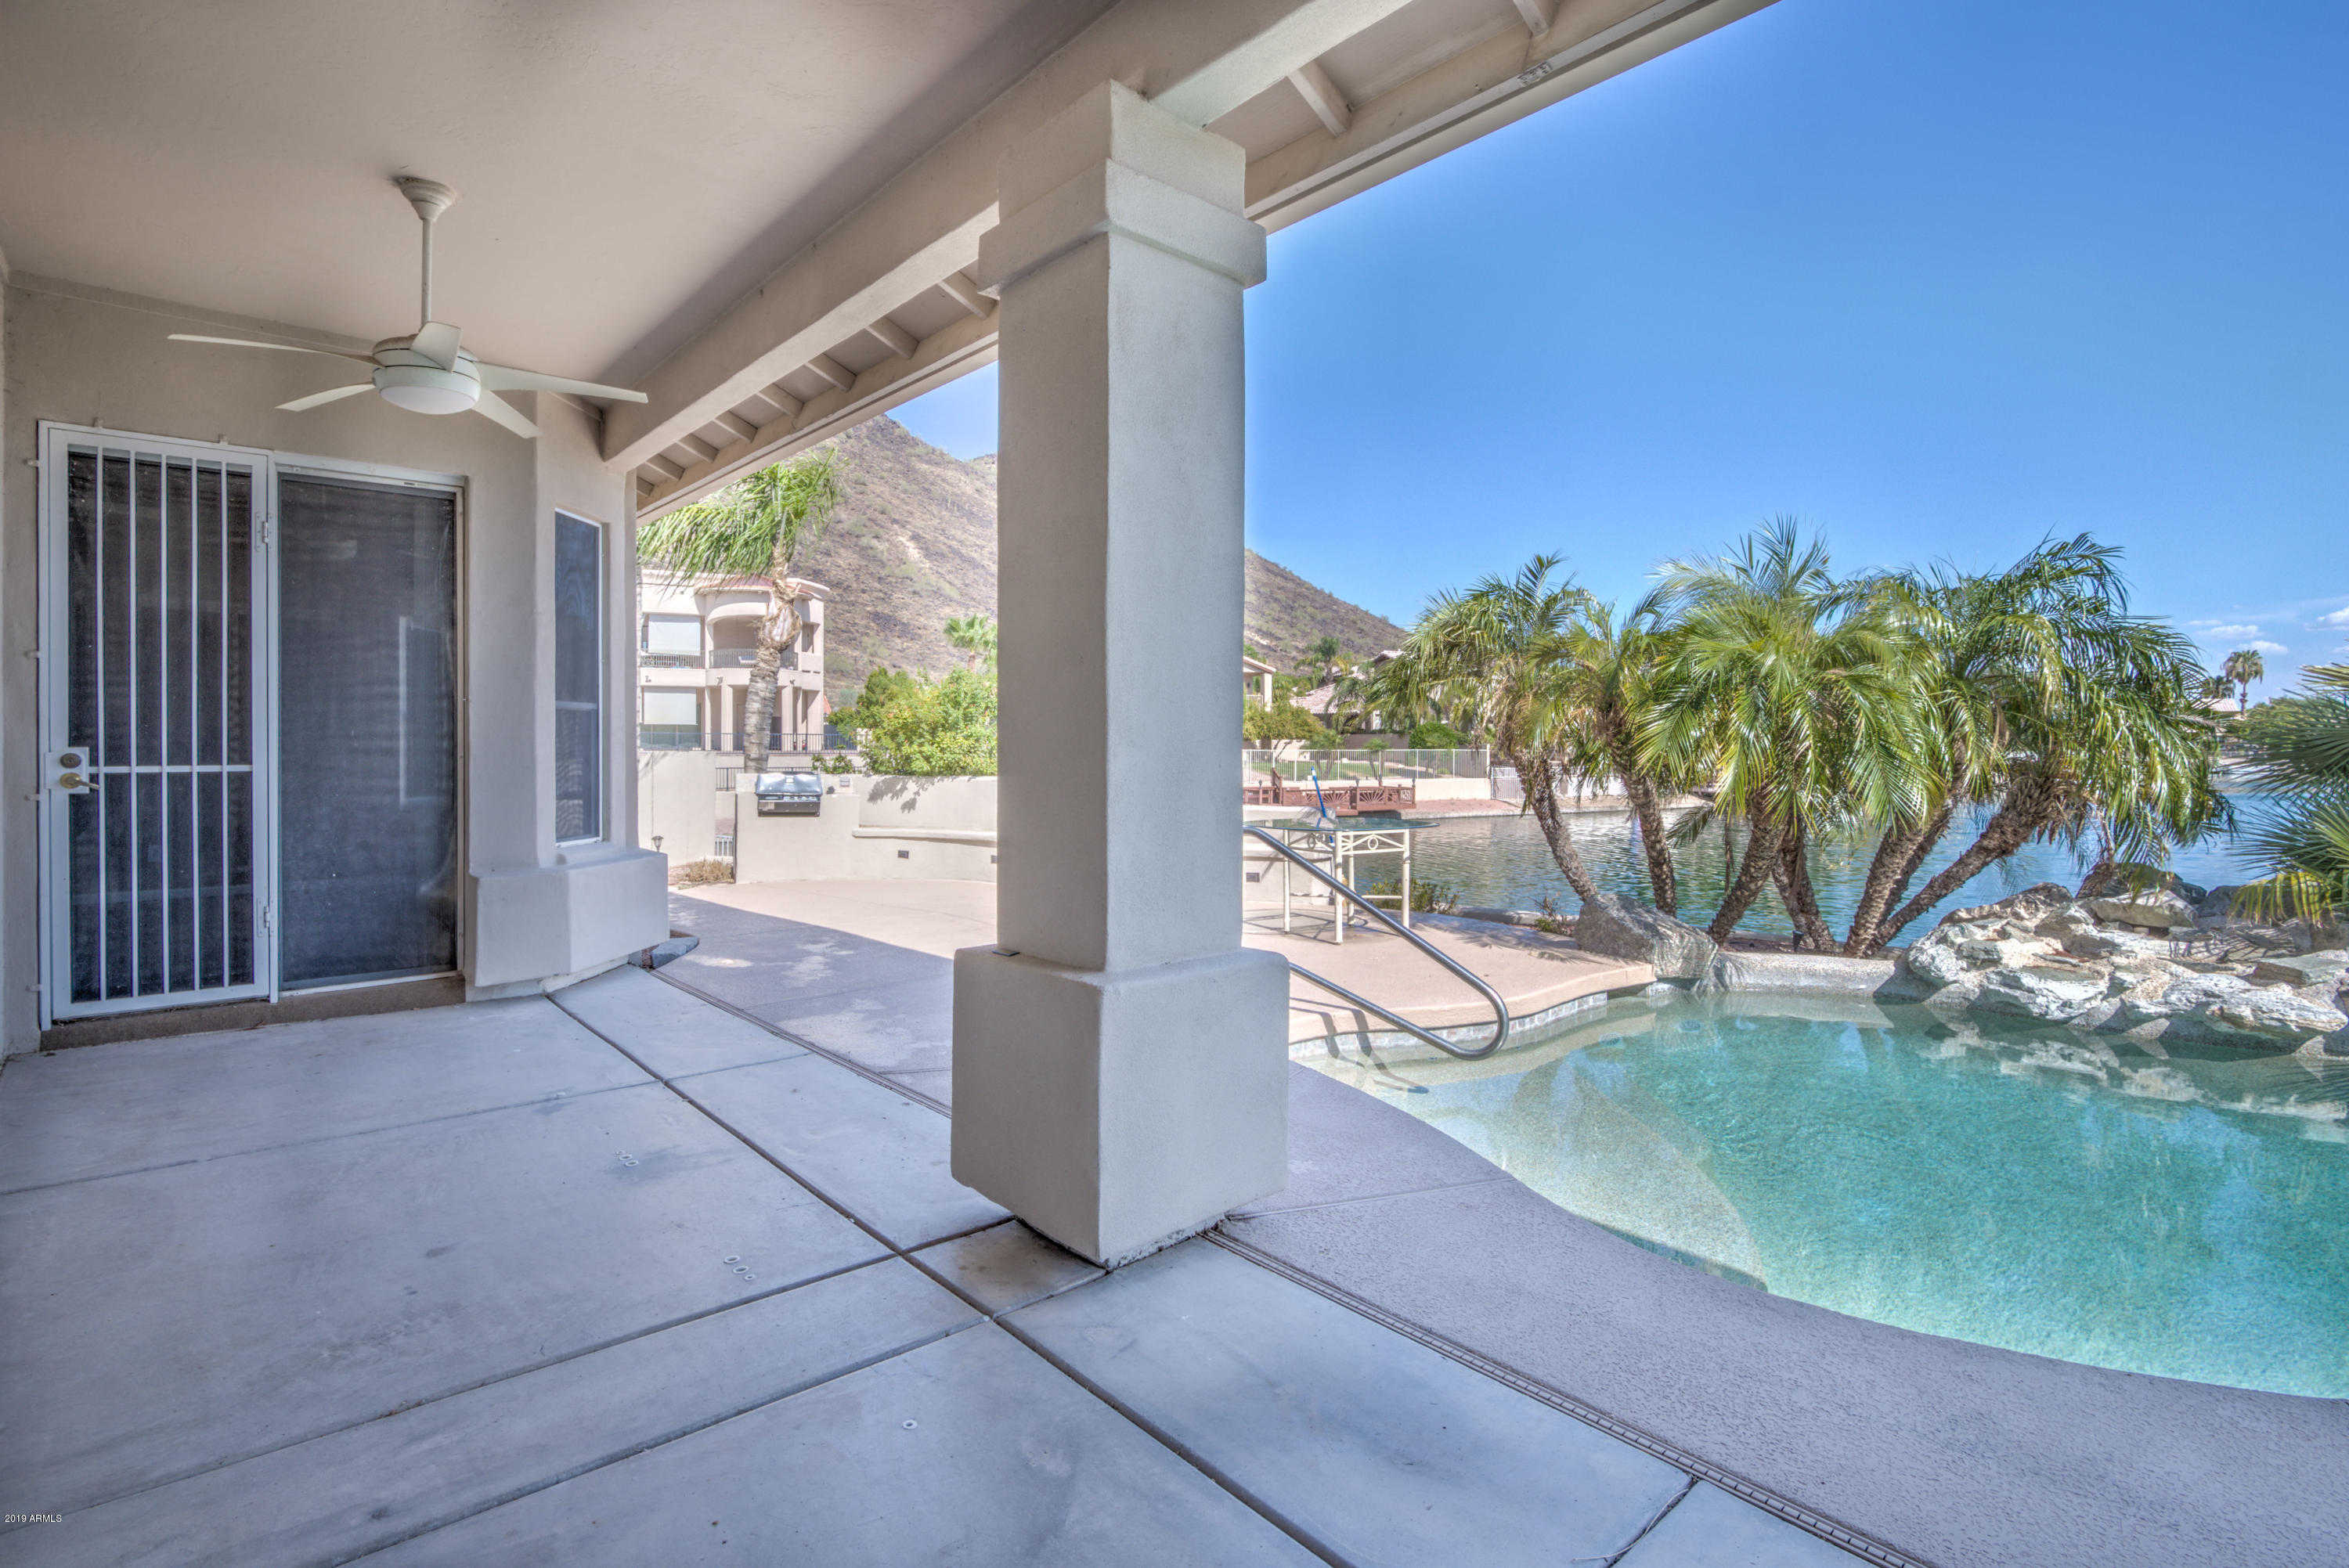 $599,000 - 4Br/3Ba - Home for Sale in Estates At Arrowhead Phase One B, Glendale